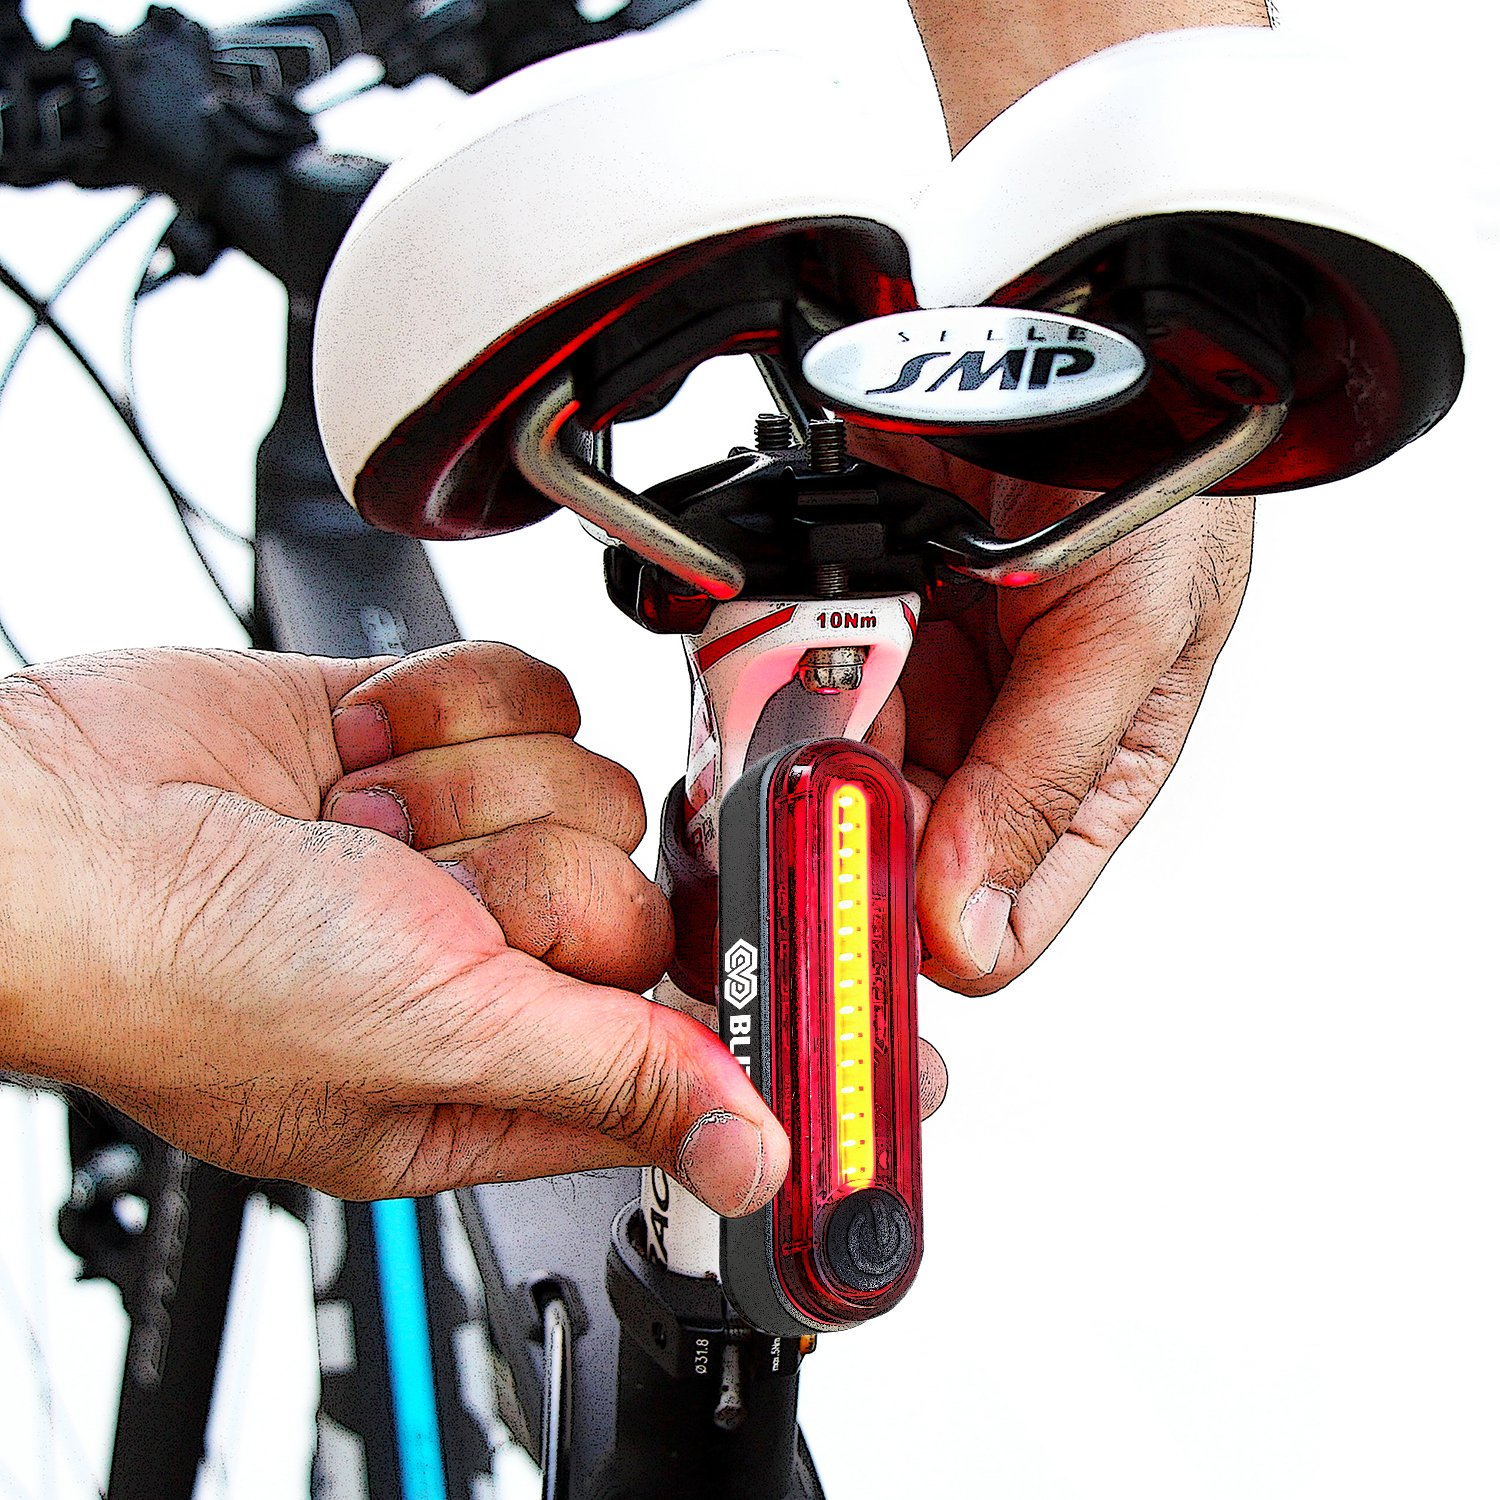 BLITZU Gator 380 USB Rechargeable Bike Light Set POWERFUL Lumens Bicycle Headlight FREE TAIL LIGHT, LED Front and Back Rear Lights Easy To Install for Kids Men Women Road Cycling Safety Flashlight by BLITZU (Image #9)